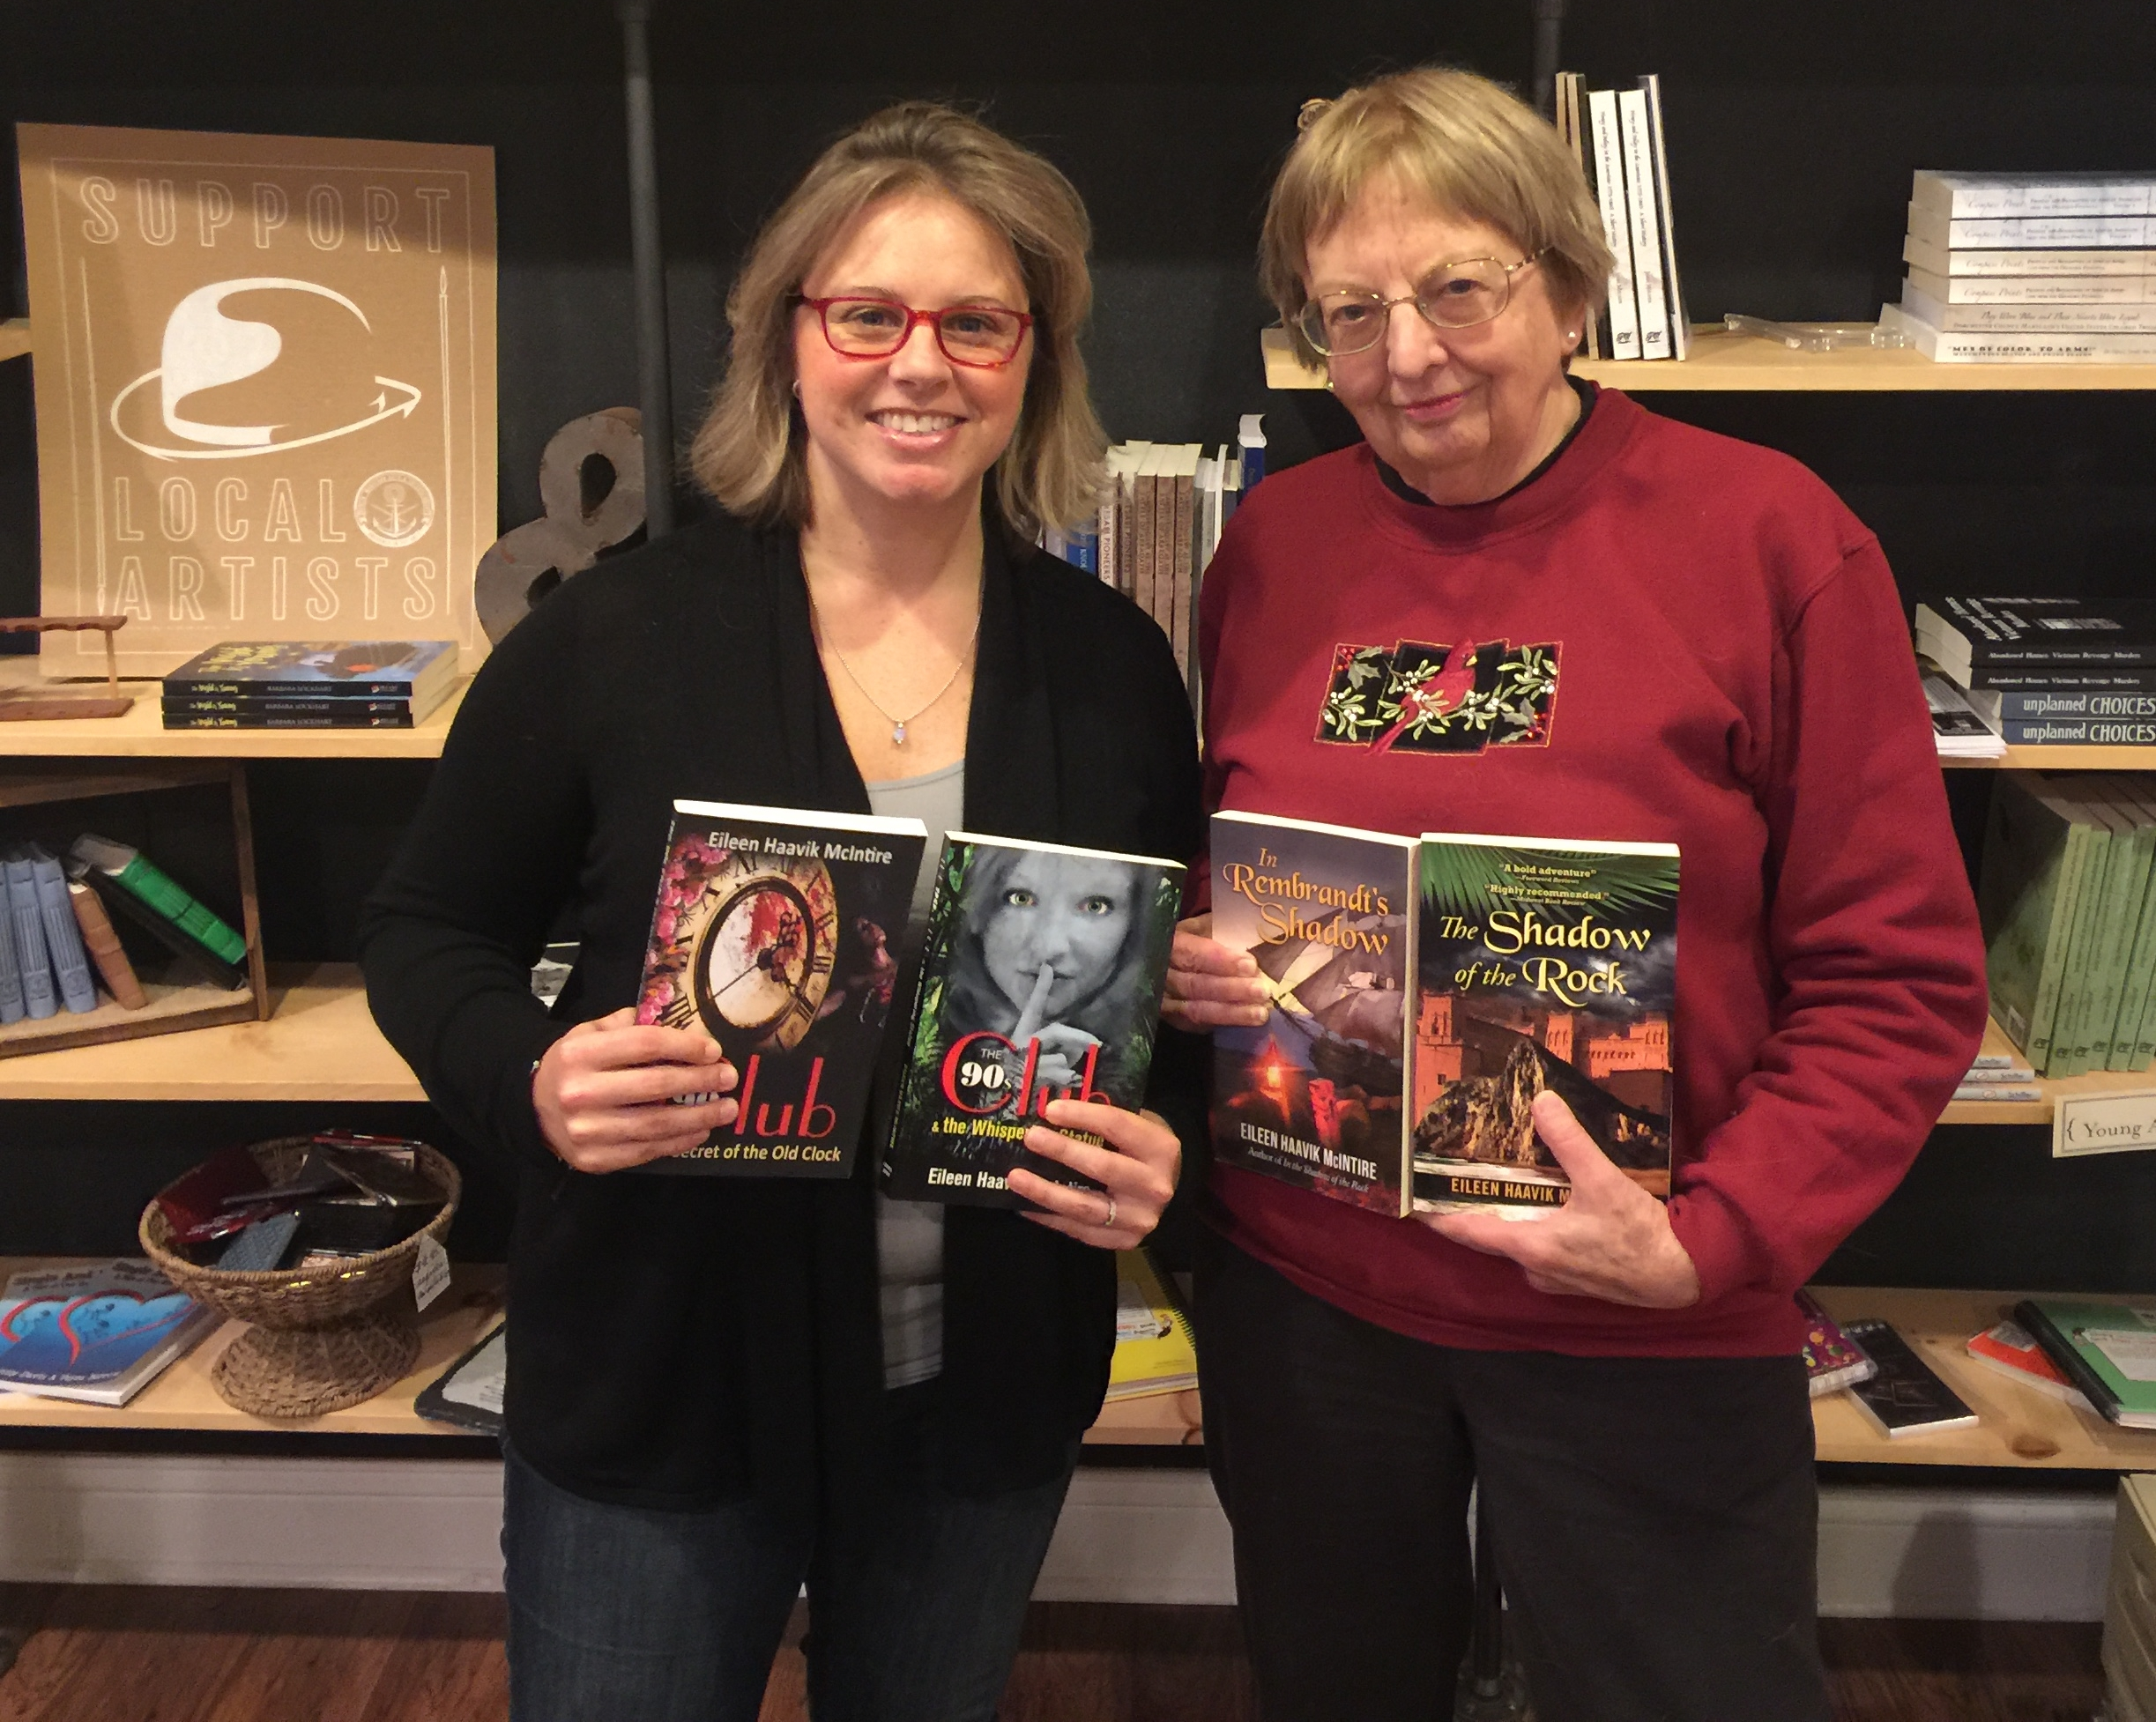 Eileen Haavik McIntire (right) shows off her books with Stephanie (left) after the podcast.